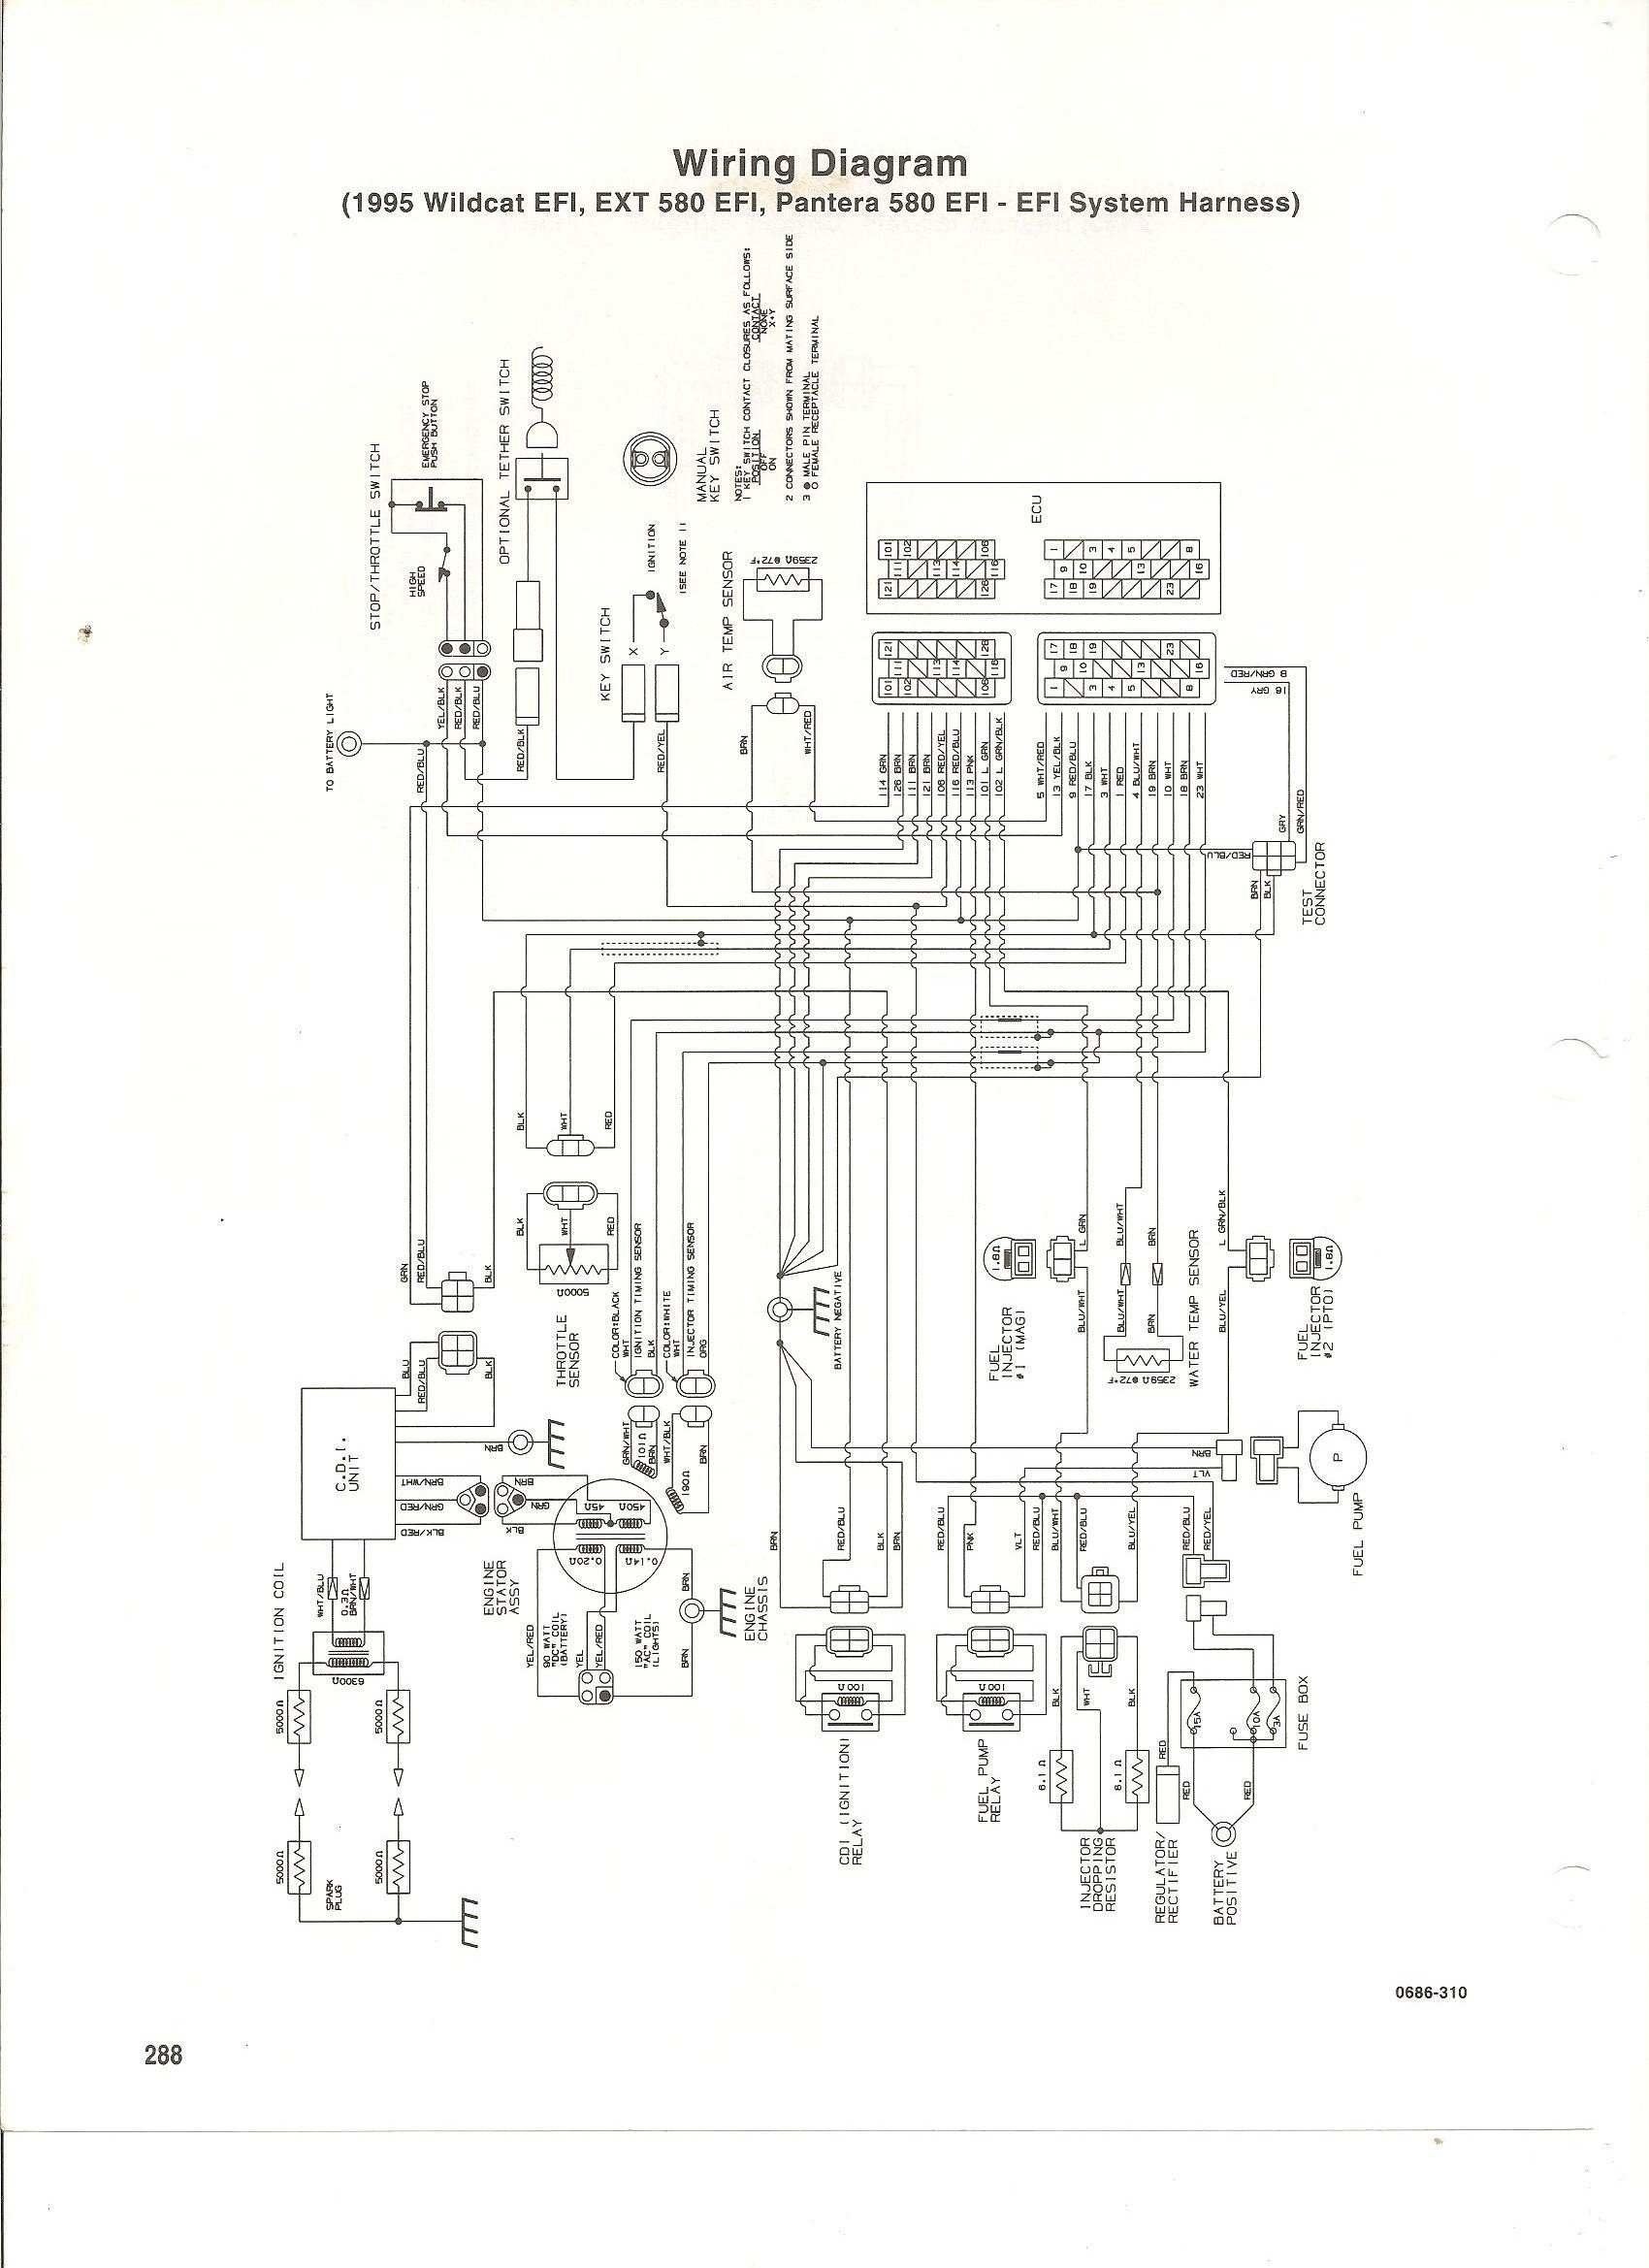 scag wildcat wiring diagram guide about wiring diagram scag wildcat electrical diagram scag wildcat wiring diagram [ 1700 x 2338 Pixel ]